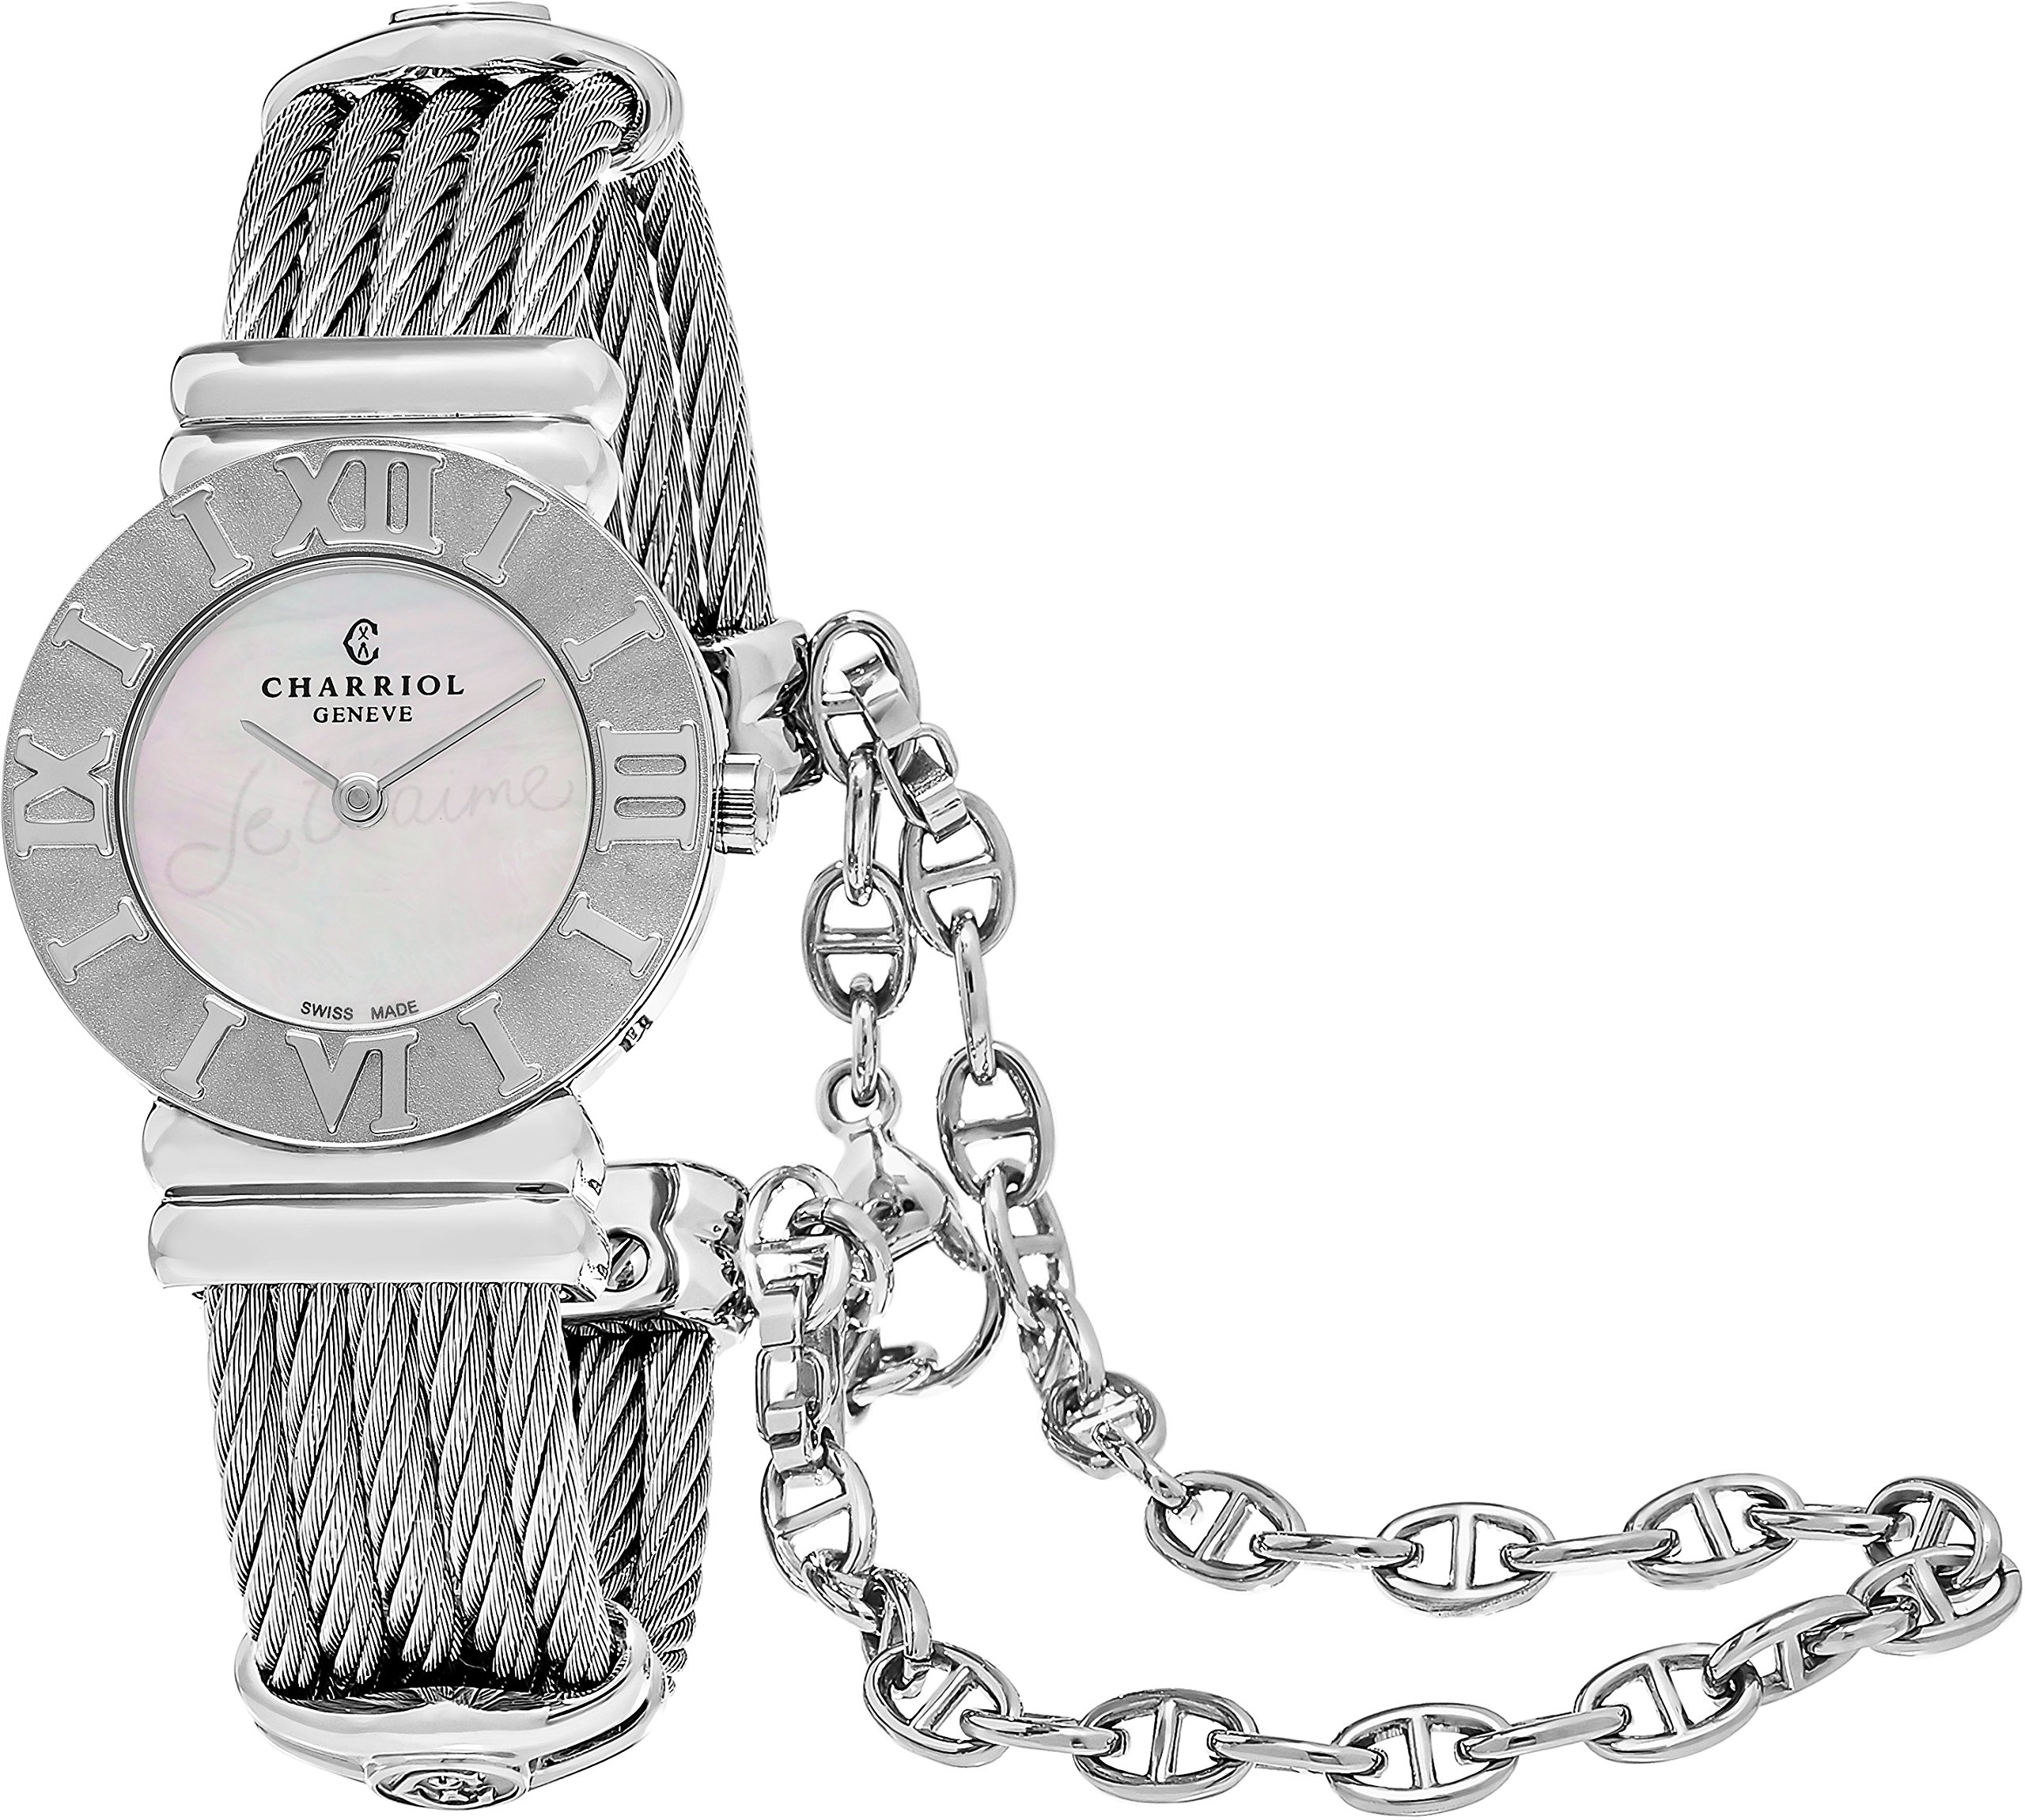 Charriol St-Tropez Classic Womens Silver Watch - 24mm Analog Mother of Pearl Face Swiss Made Quartz Ladies Watch - Luxury Stainless Steel bracelet Dress Watches For Women 028R.540.554